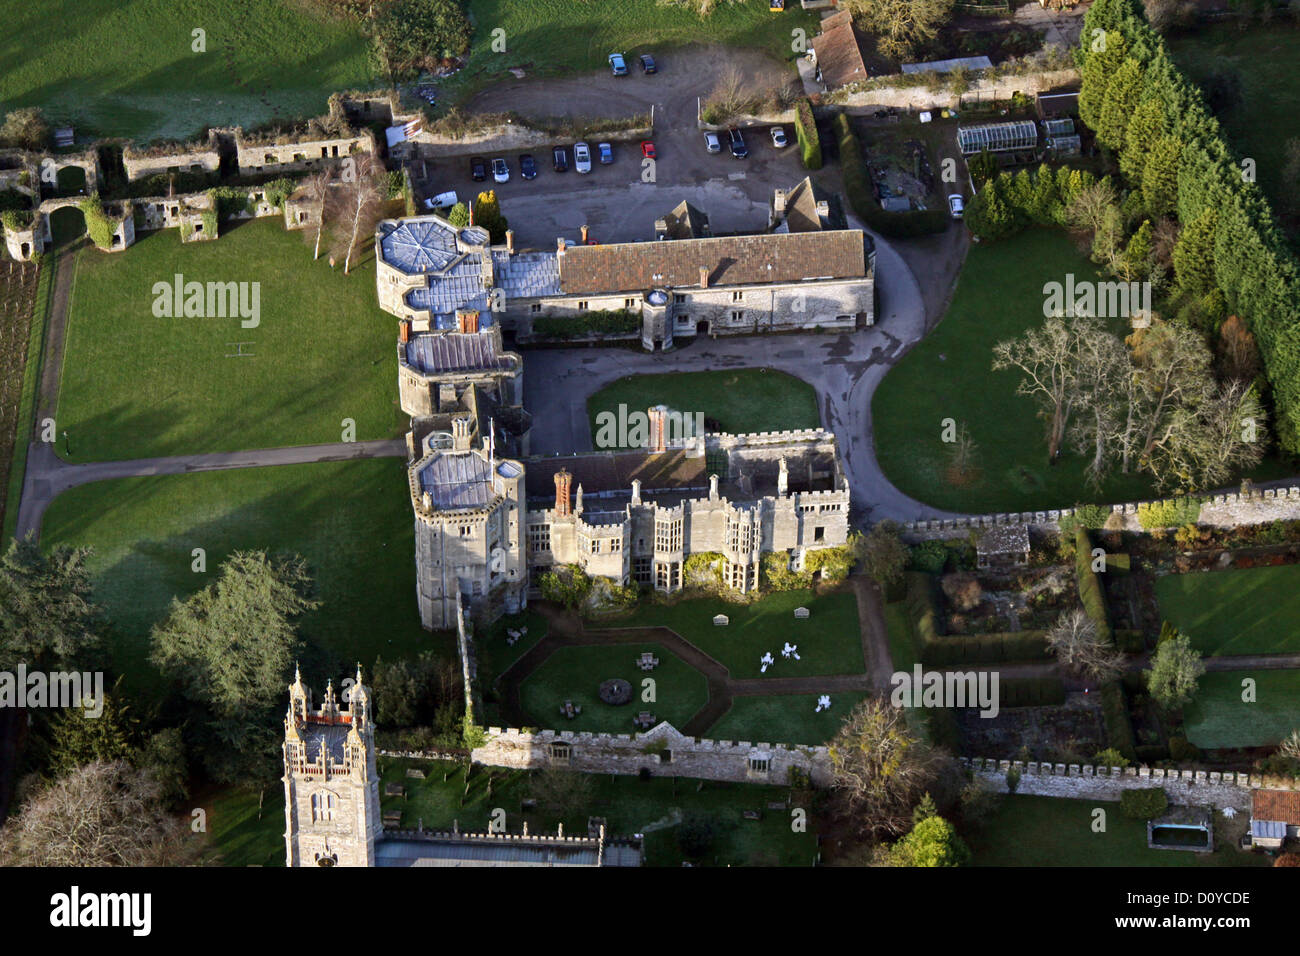 aerial view of Thornbury Castle, Gloucestershire - Stock Image